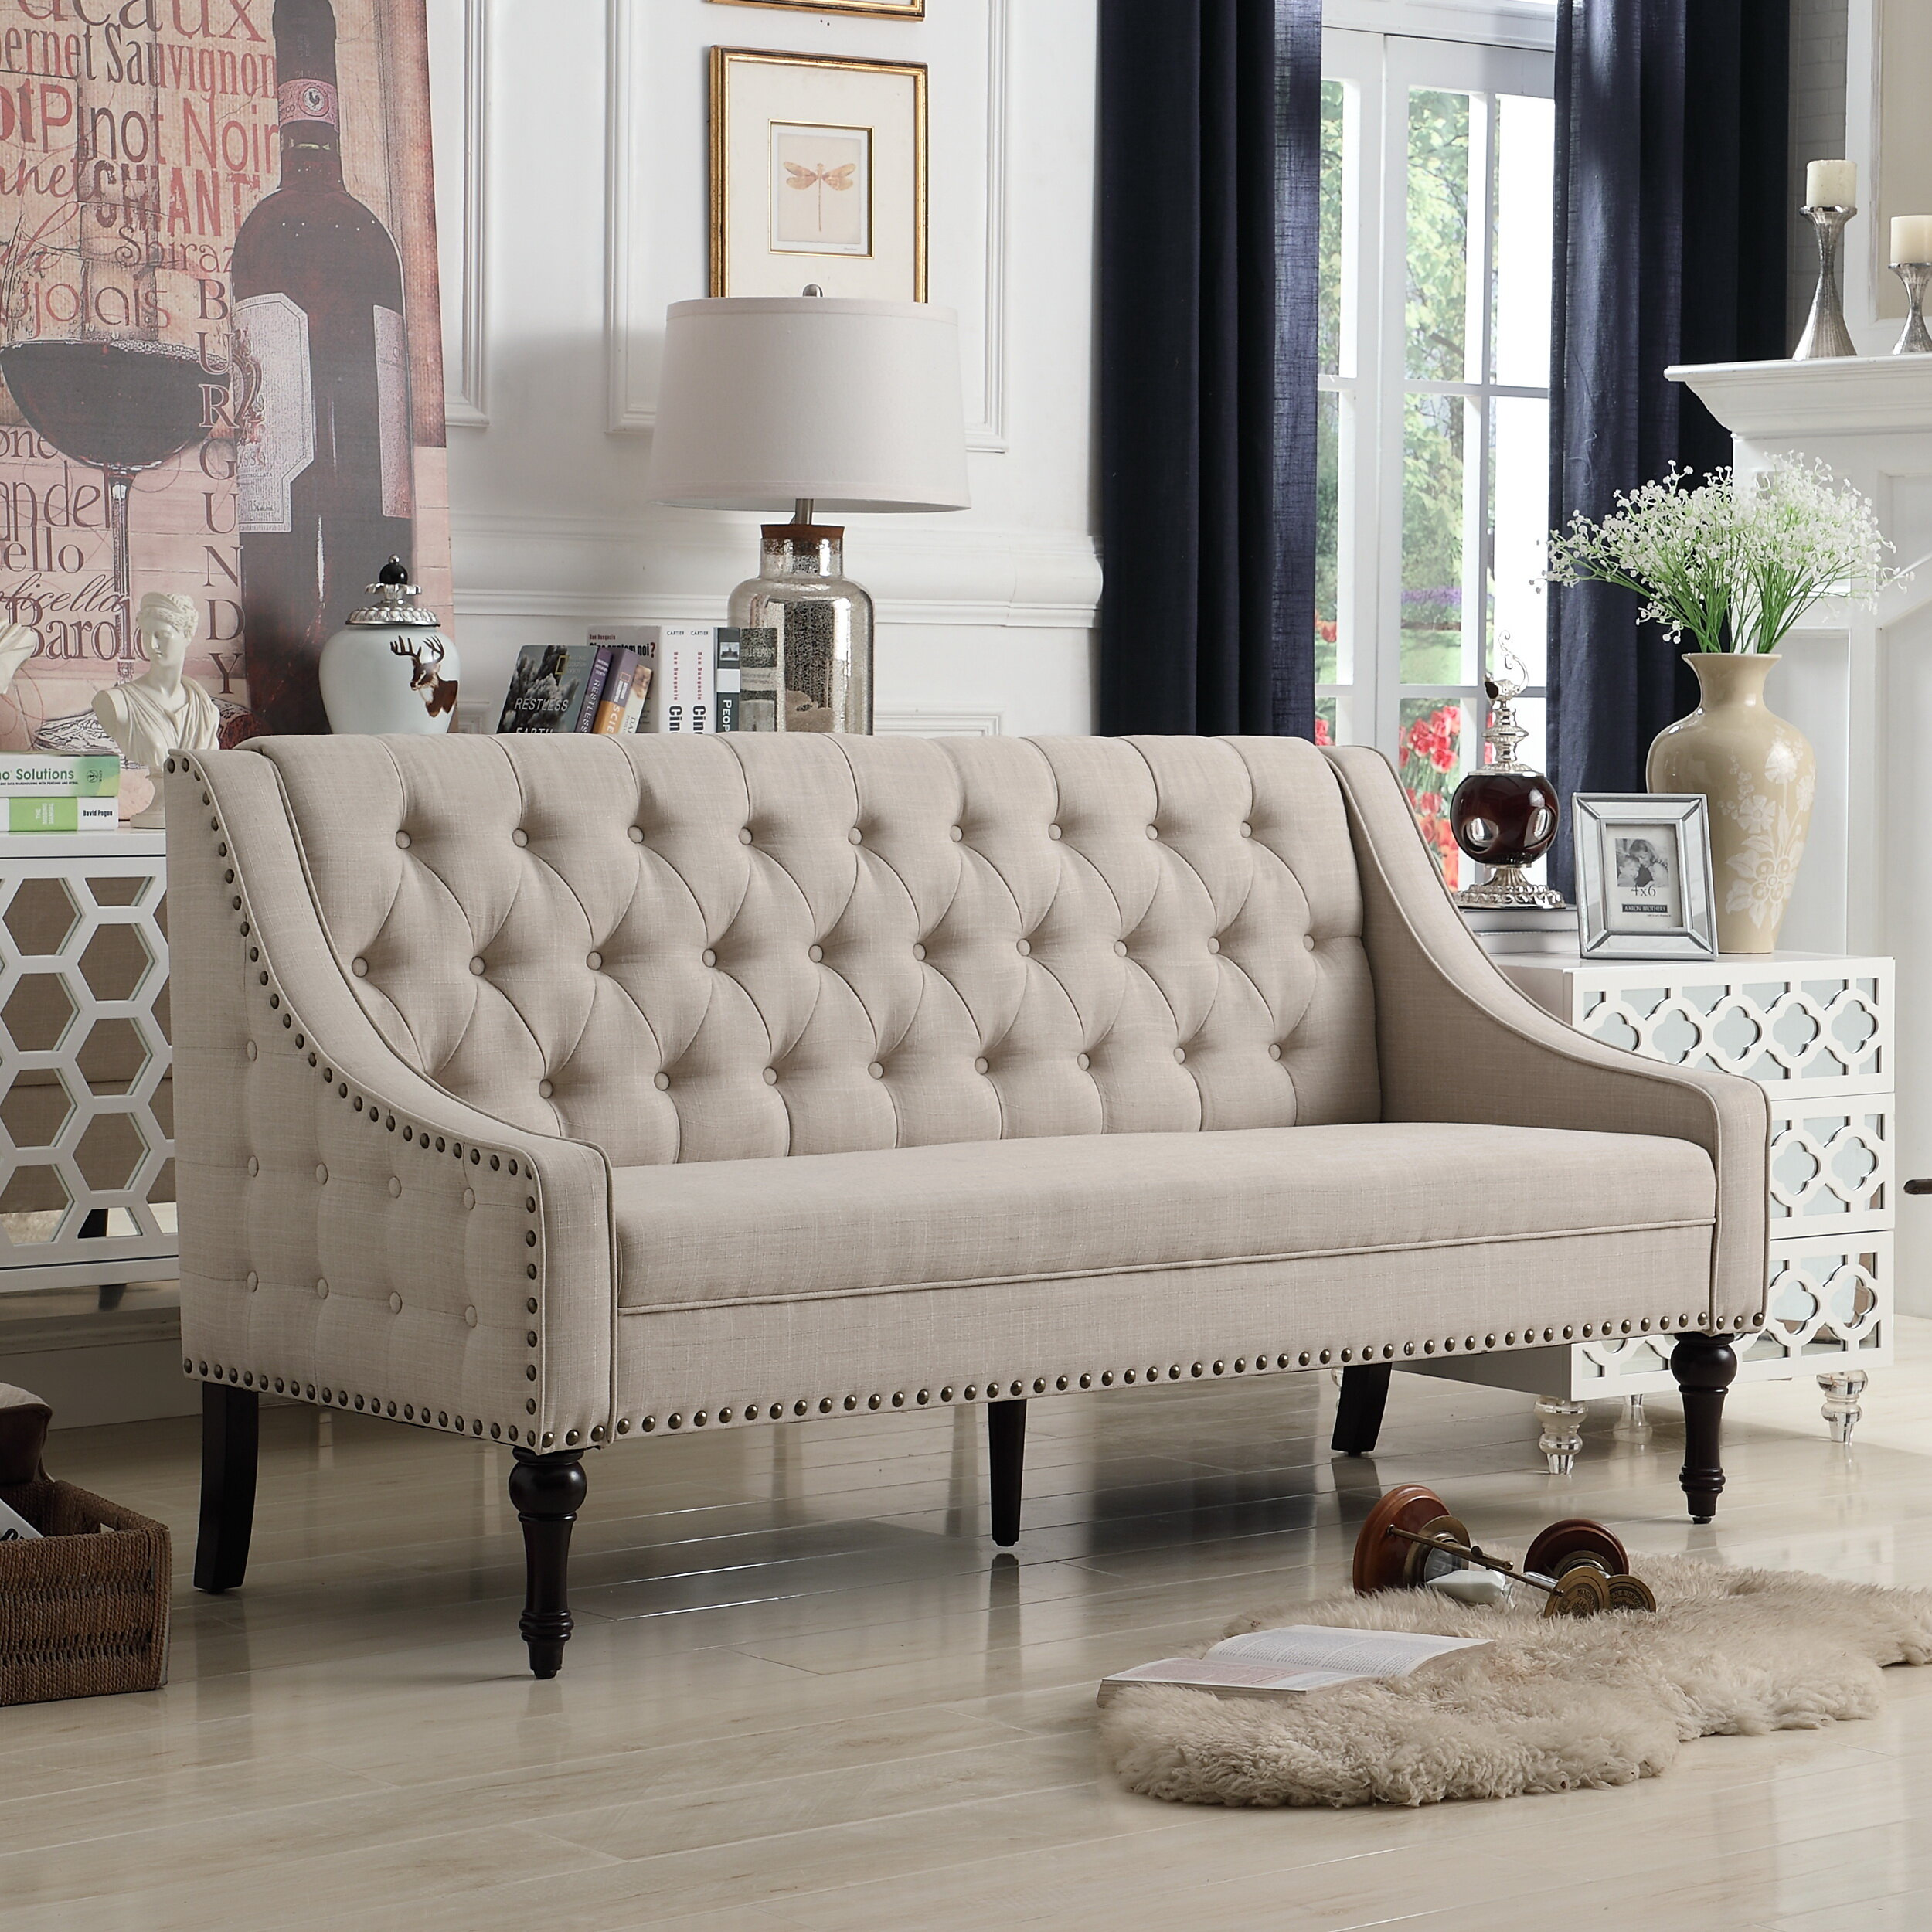 Outstanding Tufted Couch Home Decorating Styles Pdpeps Interior Chair Design Pdpepsorg